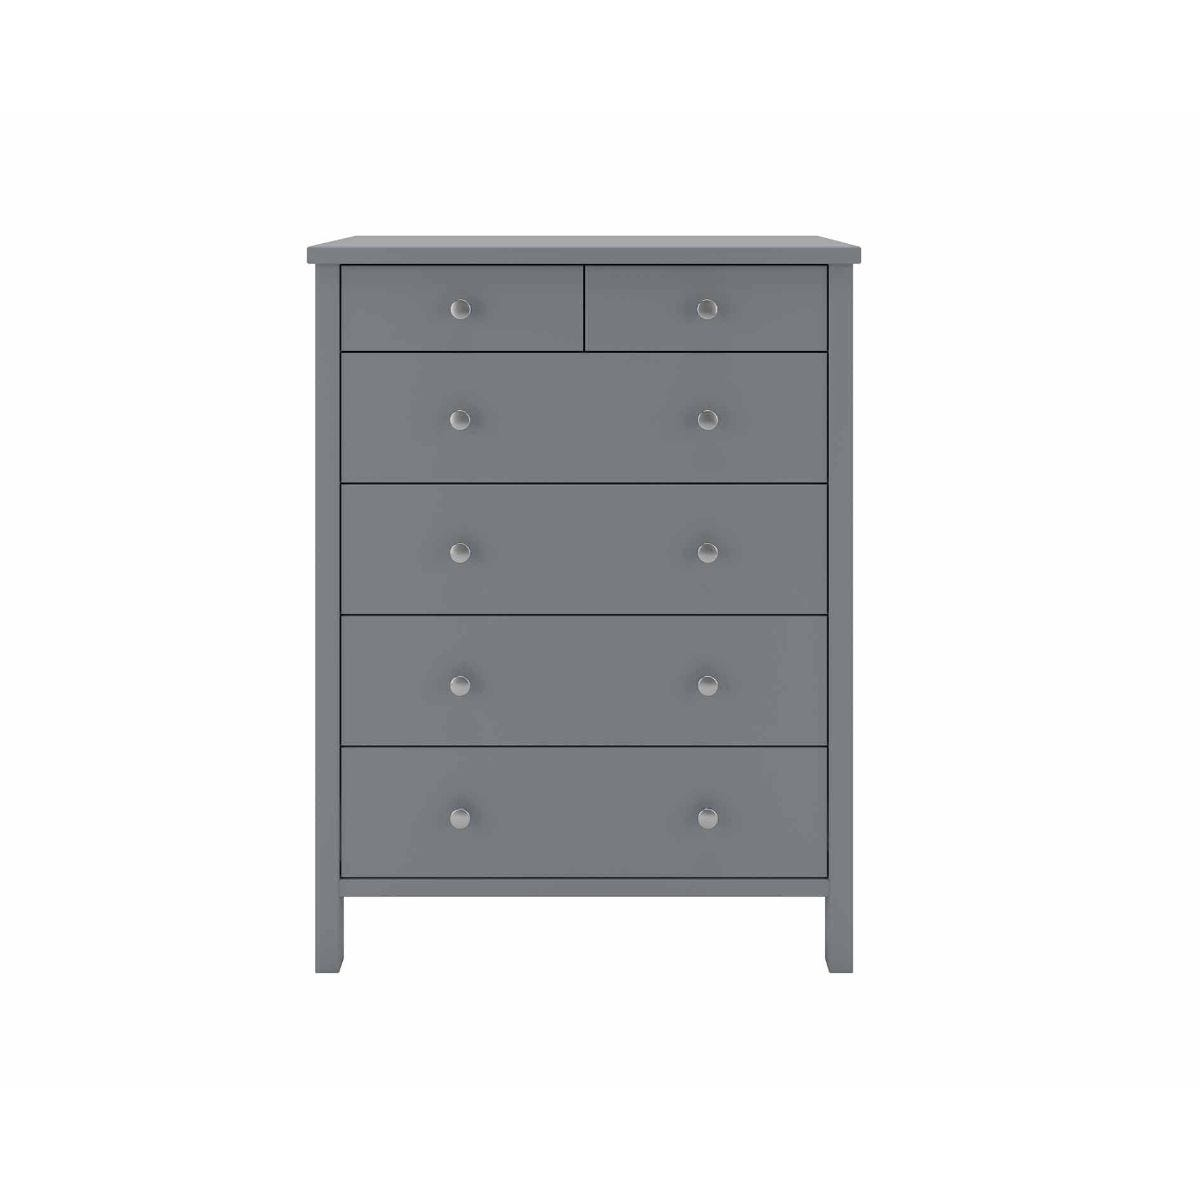 Steens Tromso 2 Over 4 Chest of Drawers, Grey